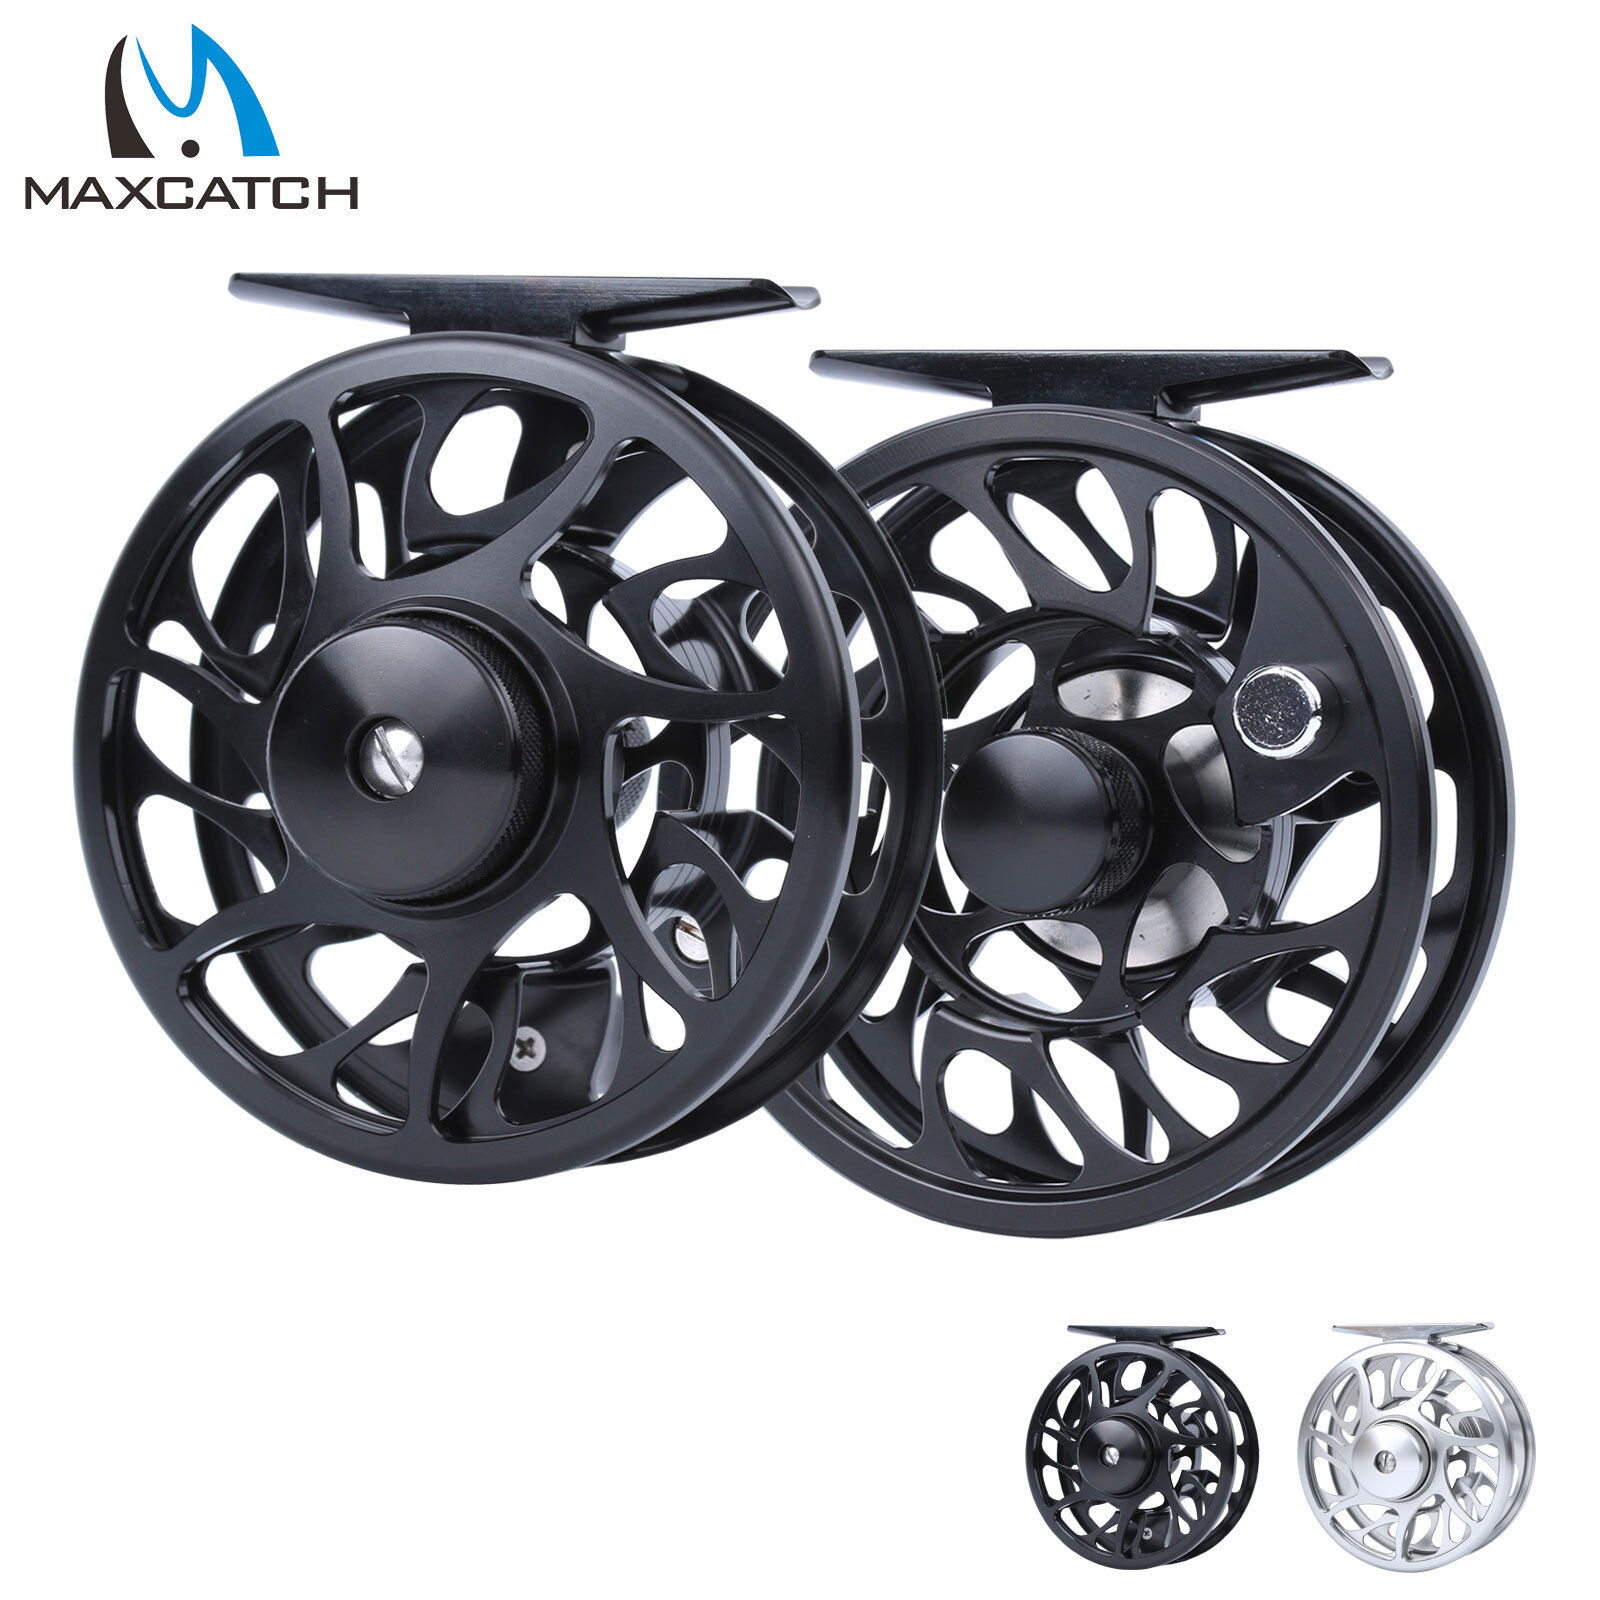 Waterproof Aluminum Fly Fishing Reel 5//6 WT Left//Right CNC Machined Fly Reel